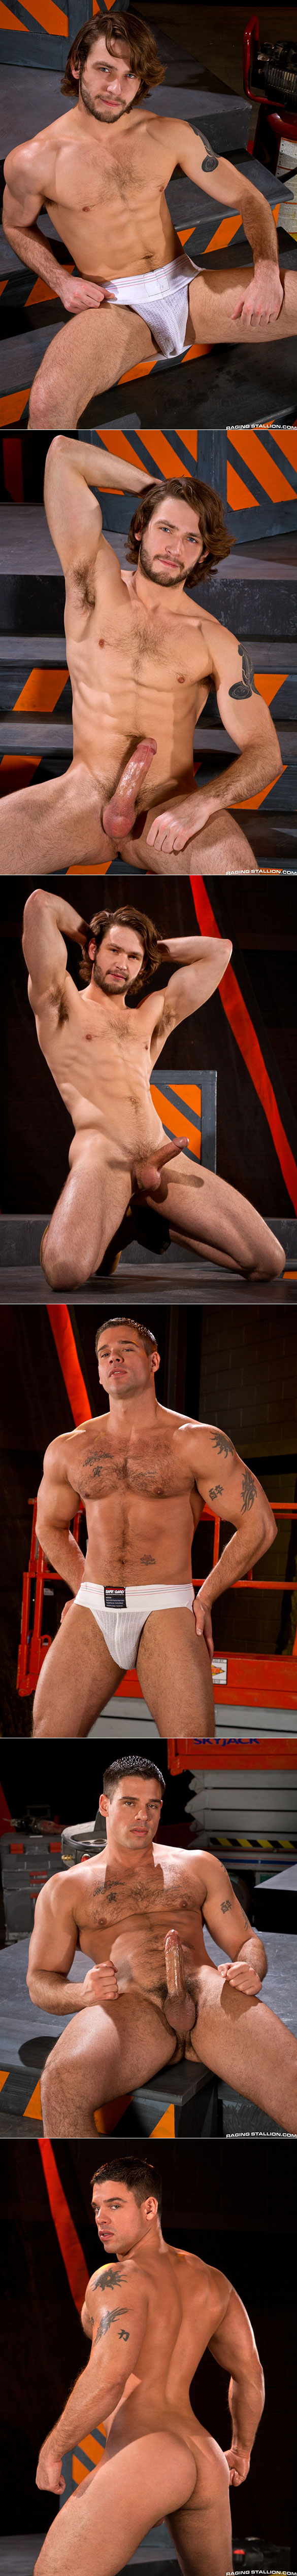 HotHouse: Duncan Black gets pounded by Derek Atlas